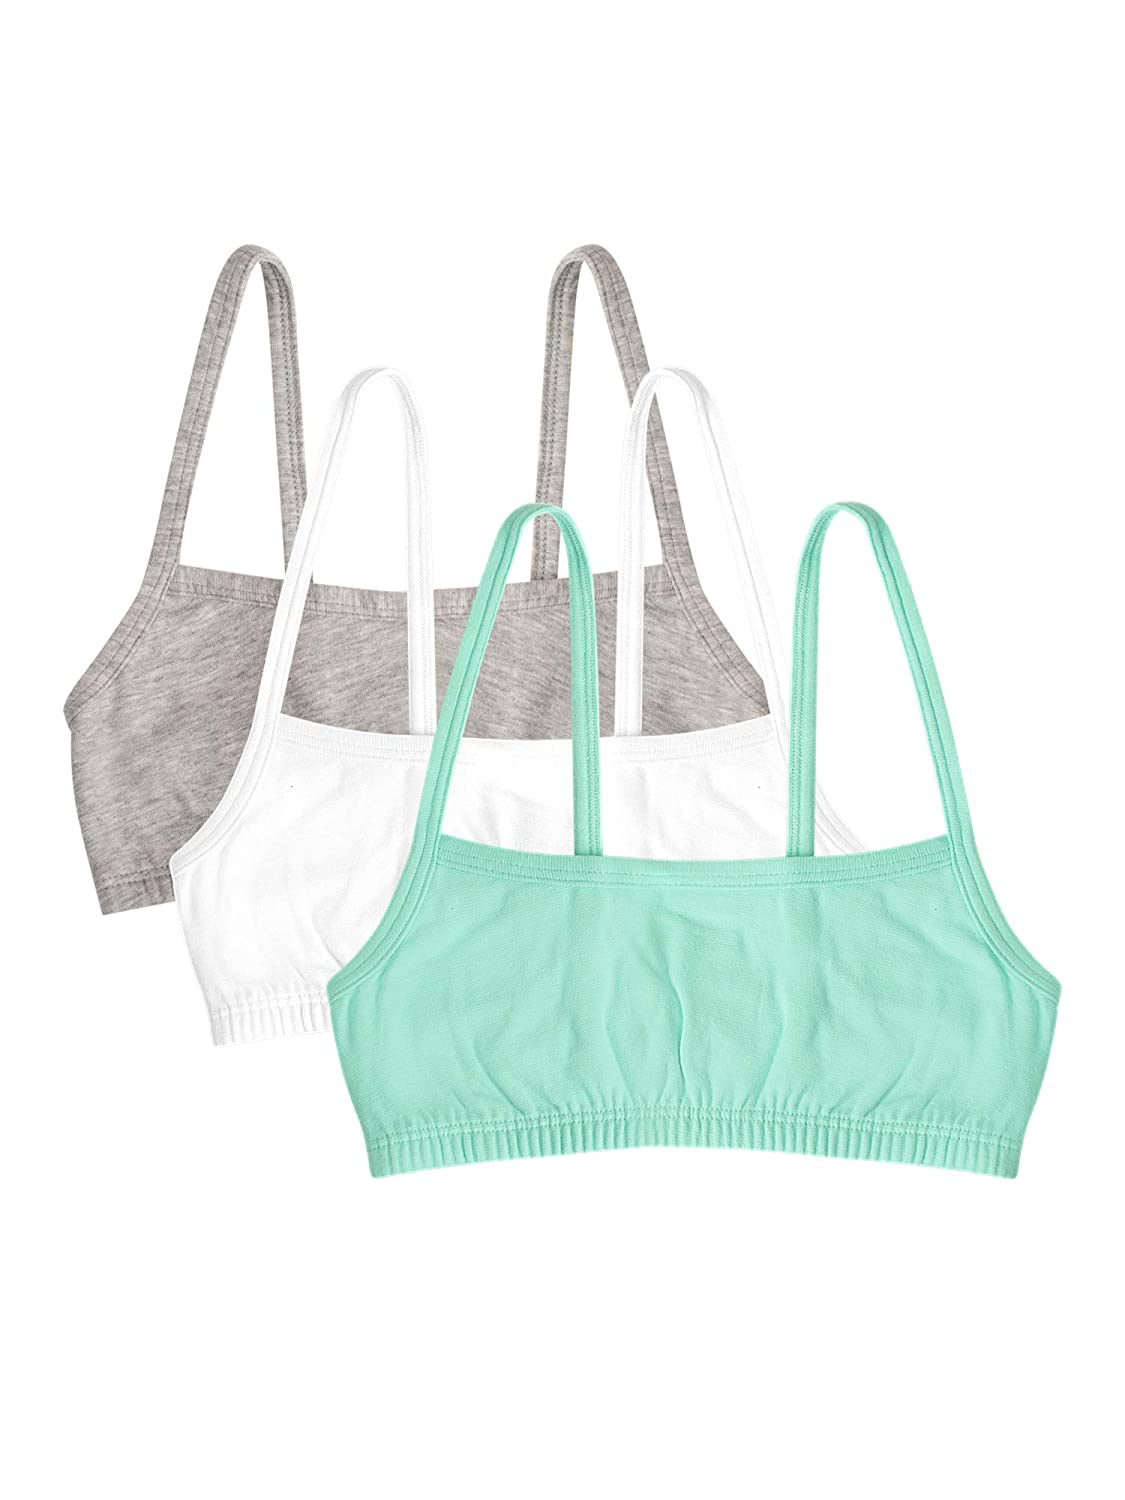 Fruit of the Loom Girls Cotton Spaghetti Strap Sport Bra Fruit of the Loom Girls 7-16 Bras 94021